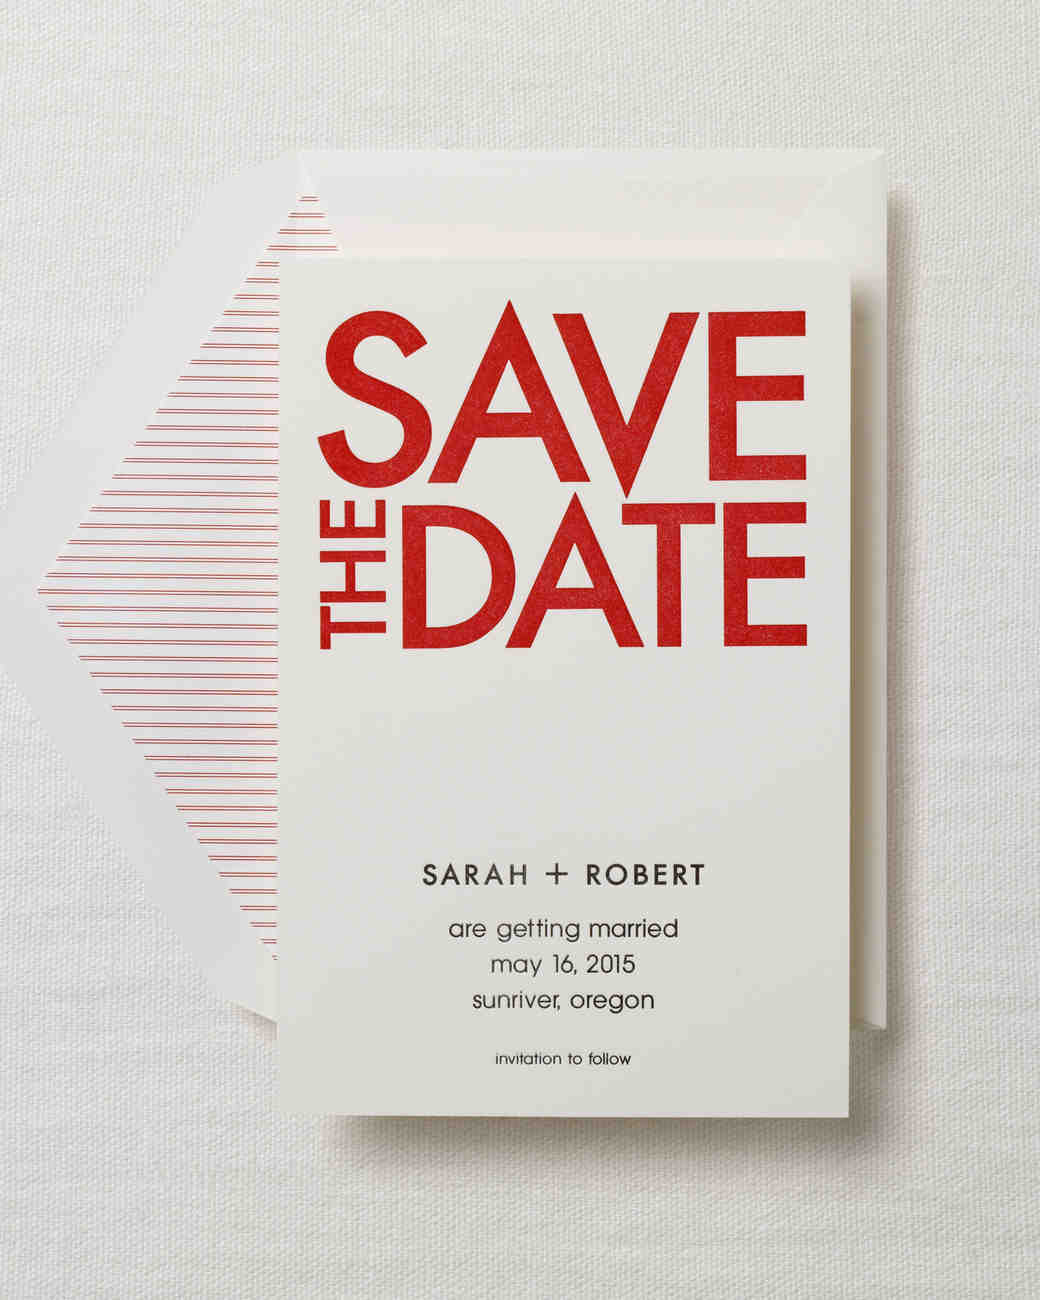 red save the dates - Kubre.euforic.co